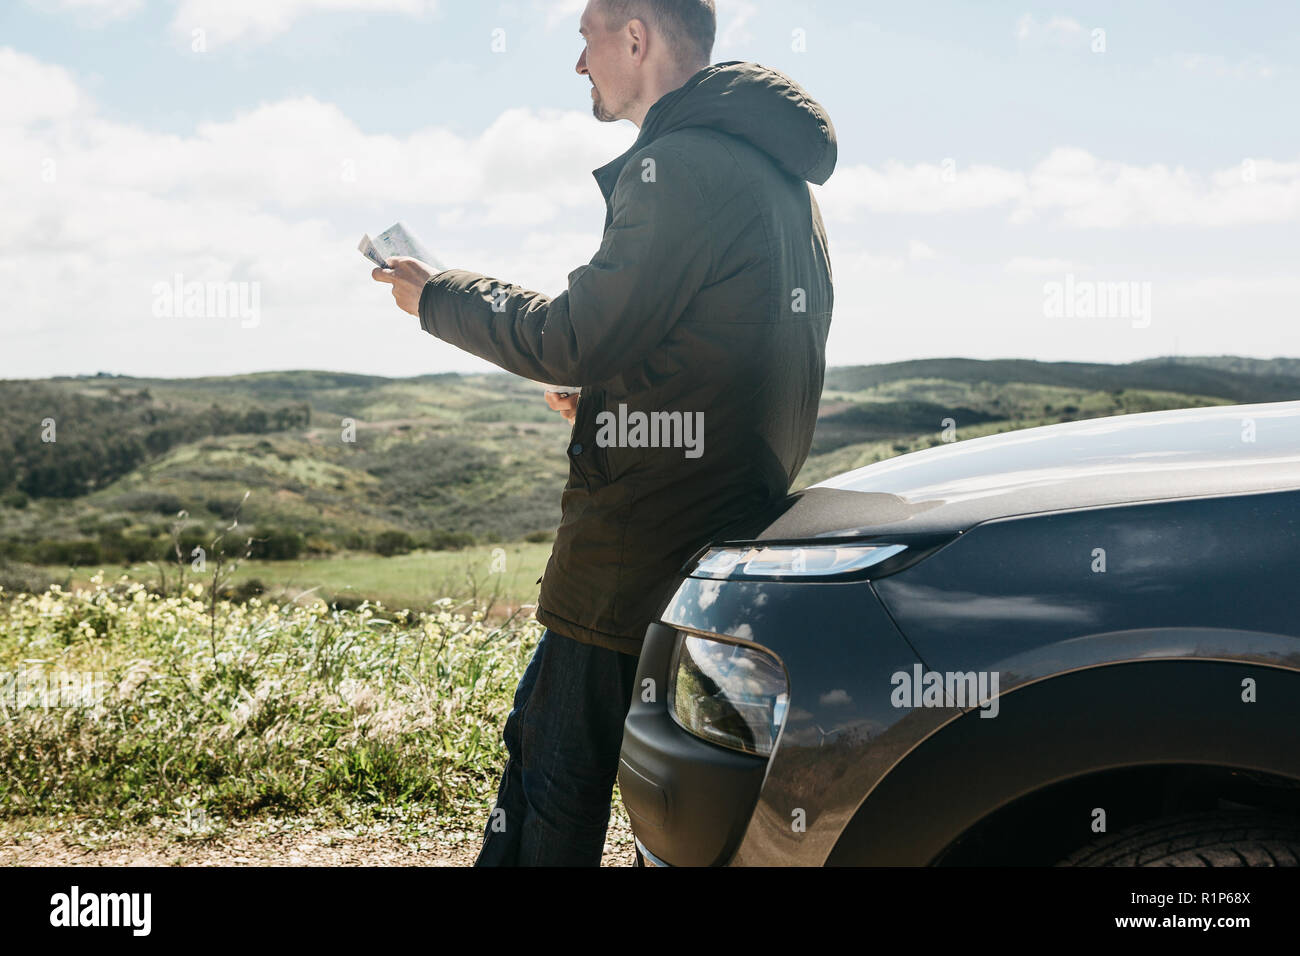 A tourist man next to the car looks at the map of the area for further travel. - Stock Image